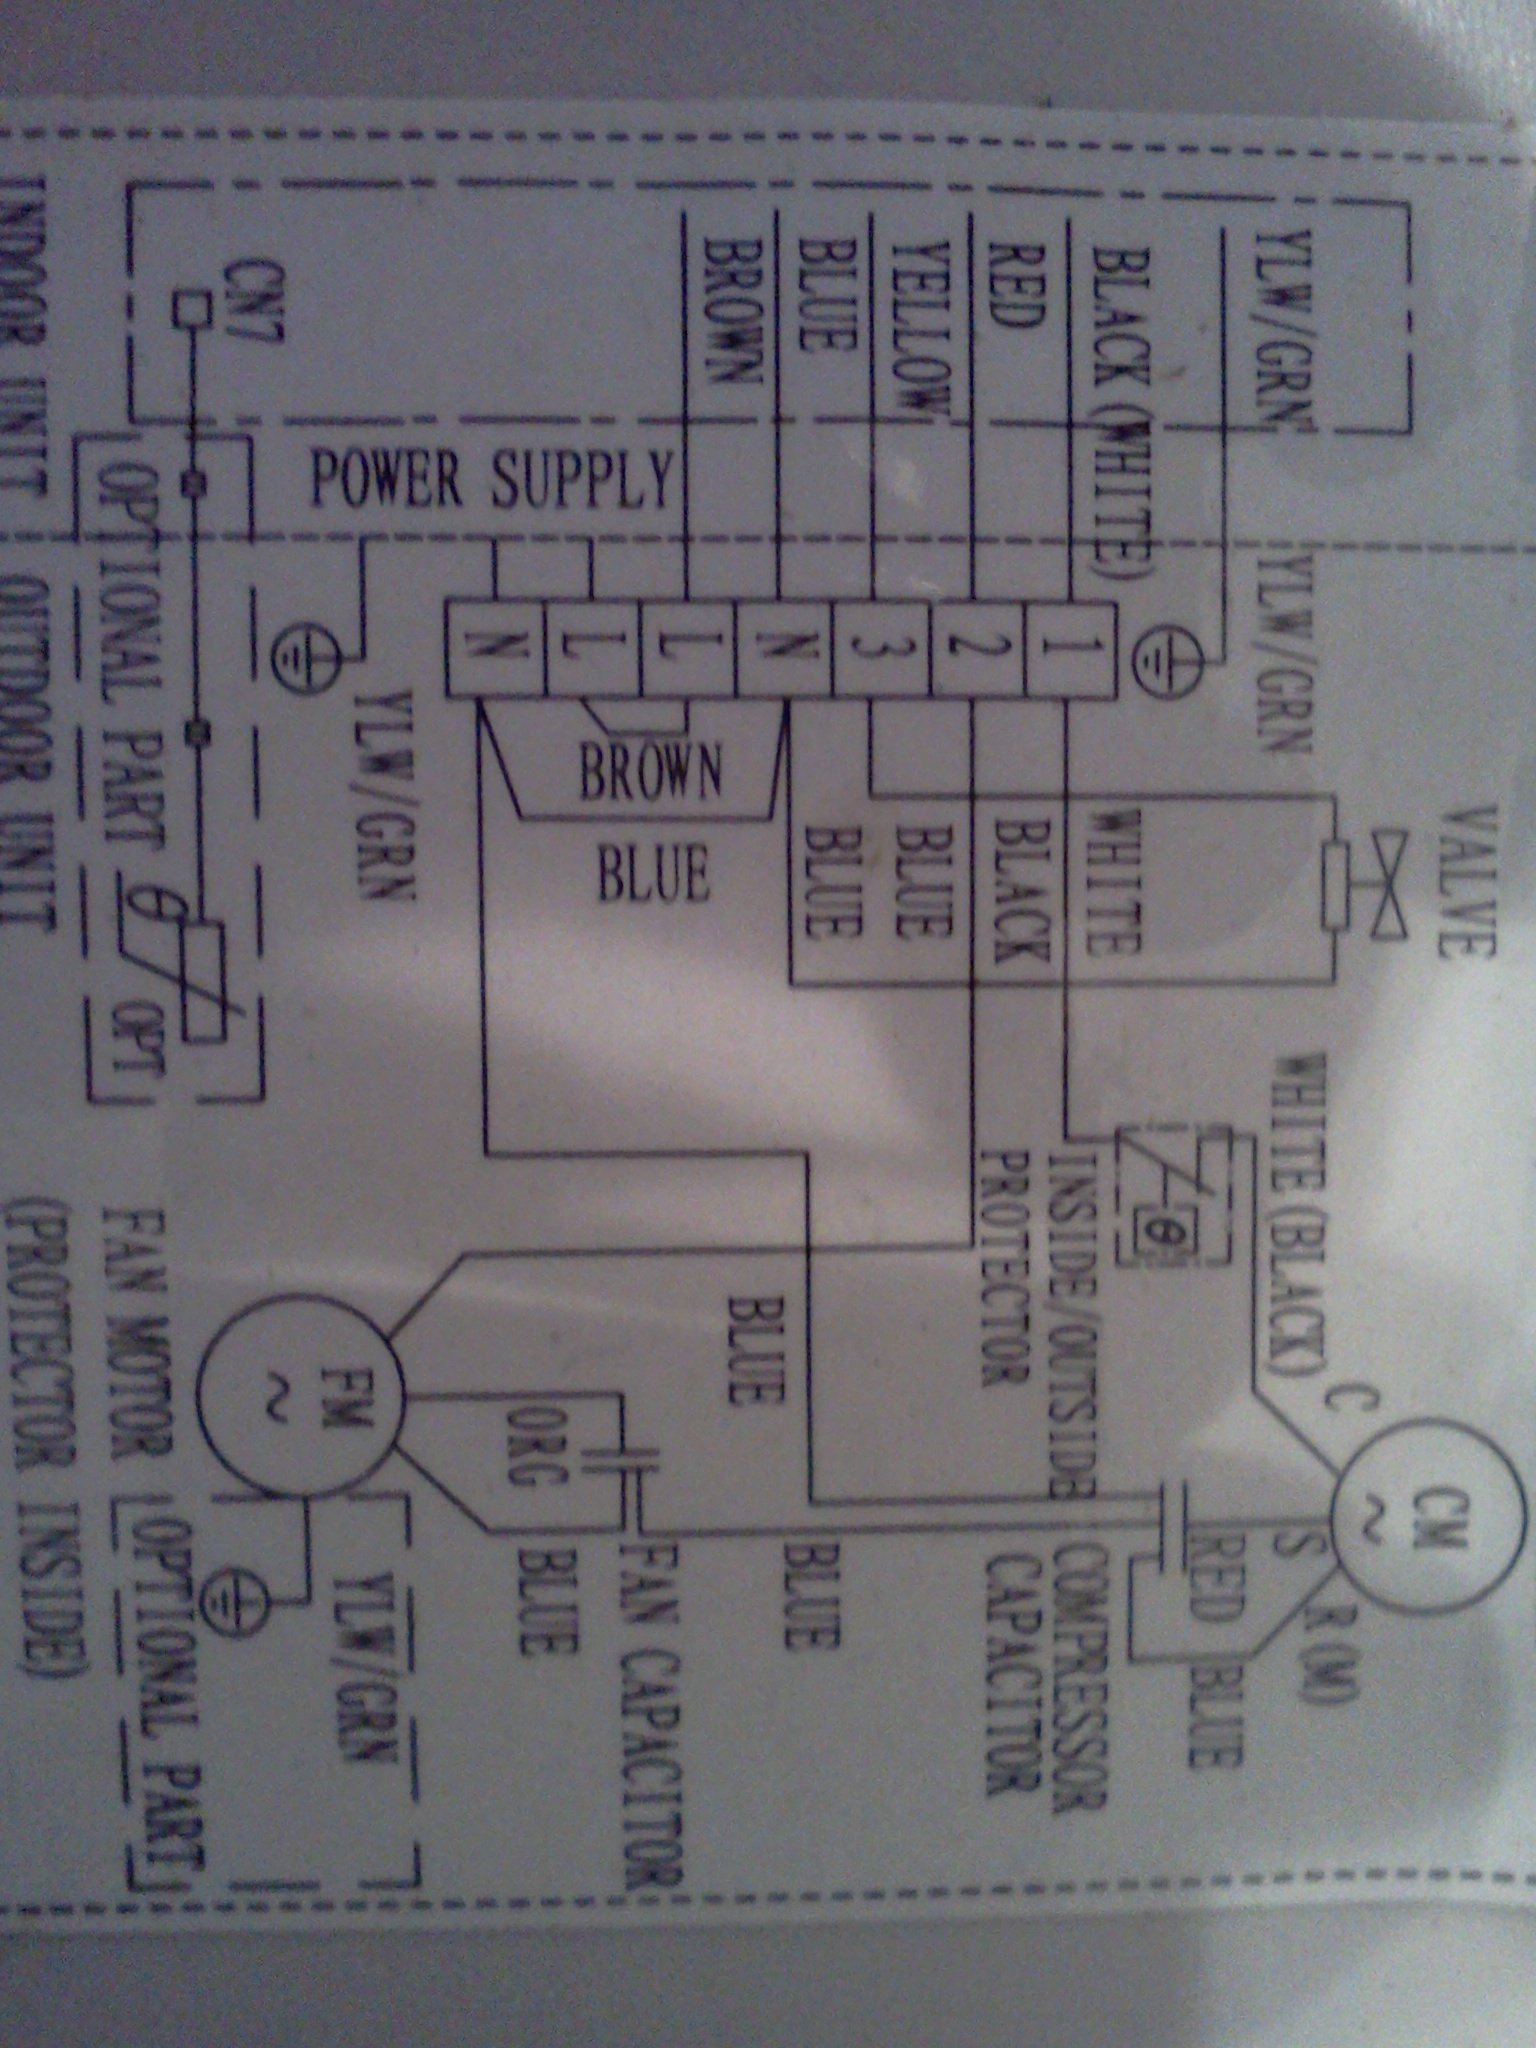 Split Air Conditioner Outdoor Unit Wiring Diagram Sante Blog Singer Ac Full Size Image